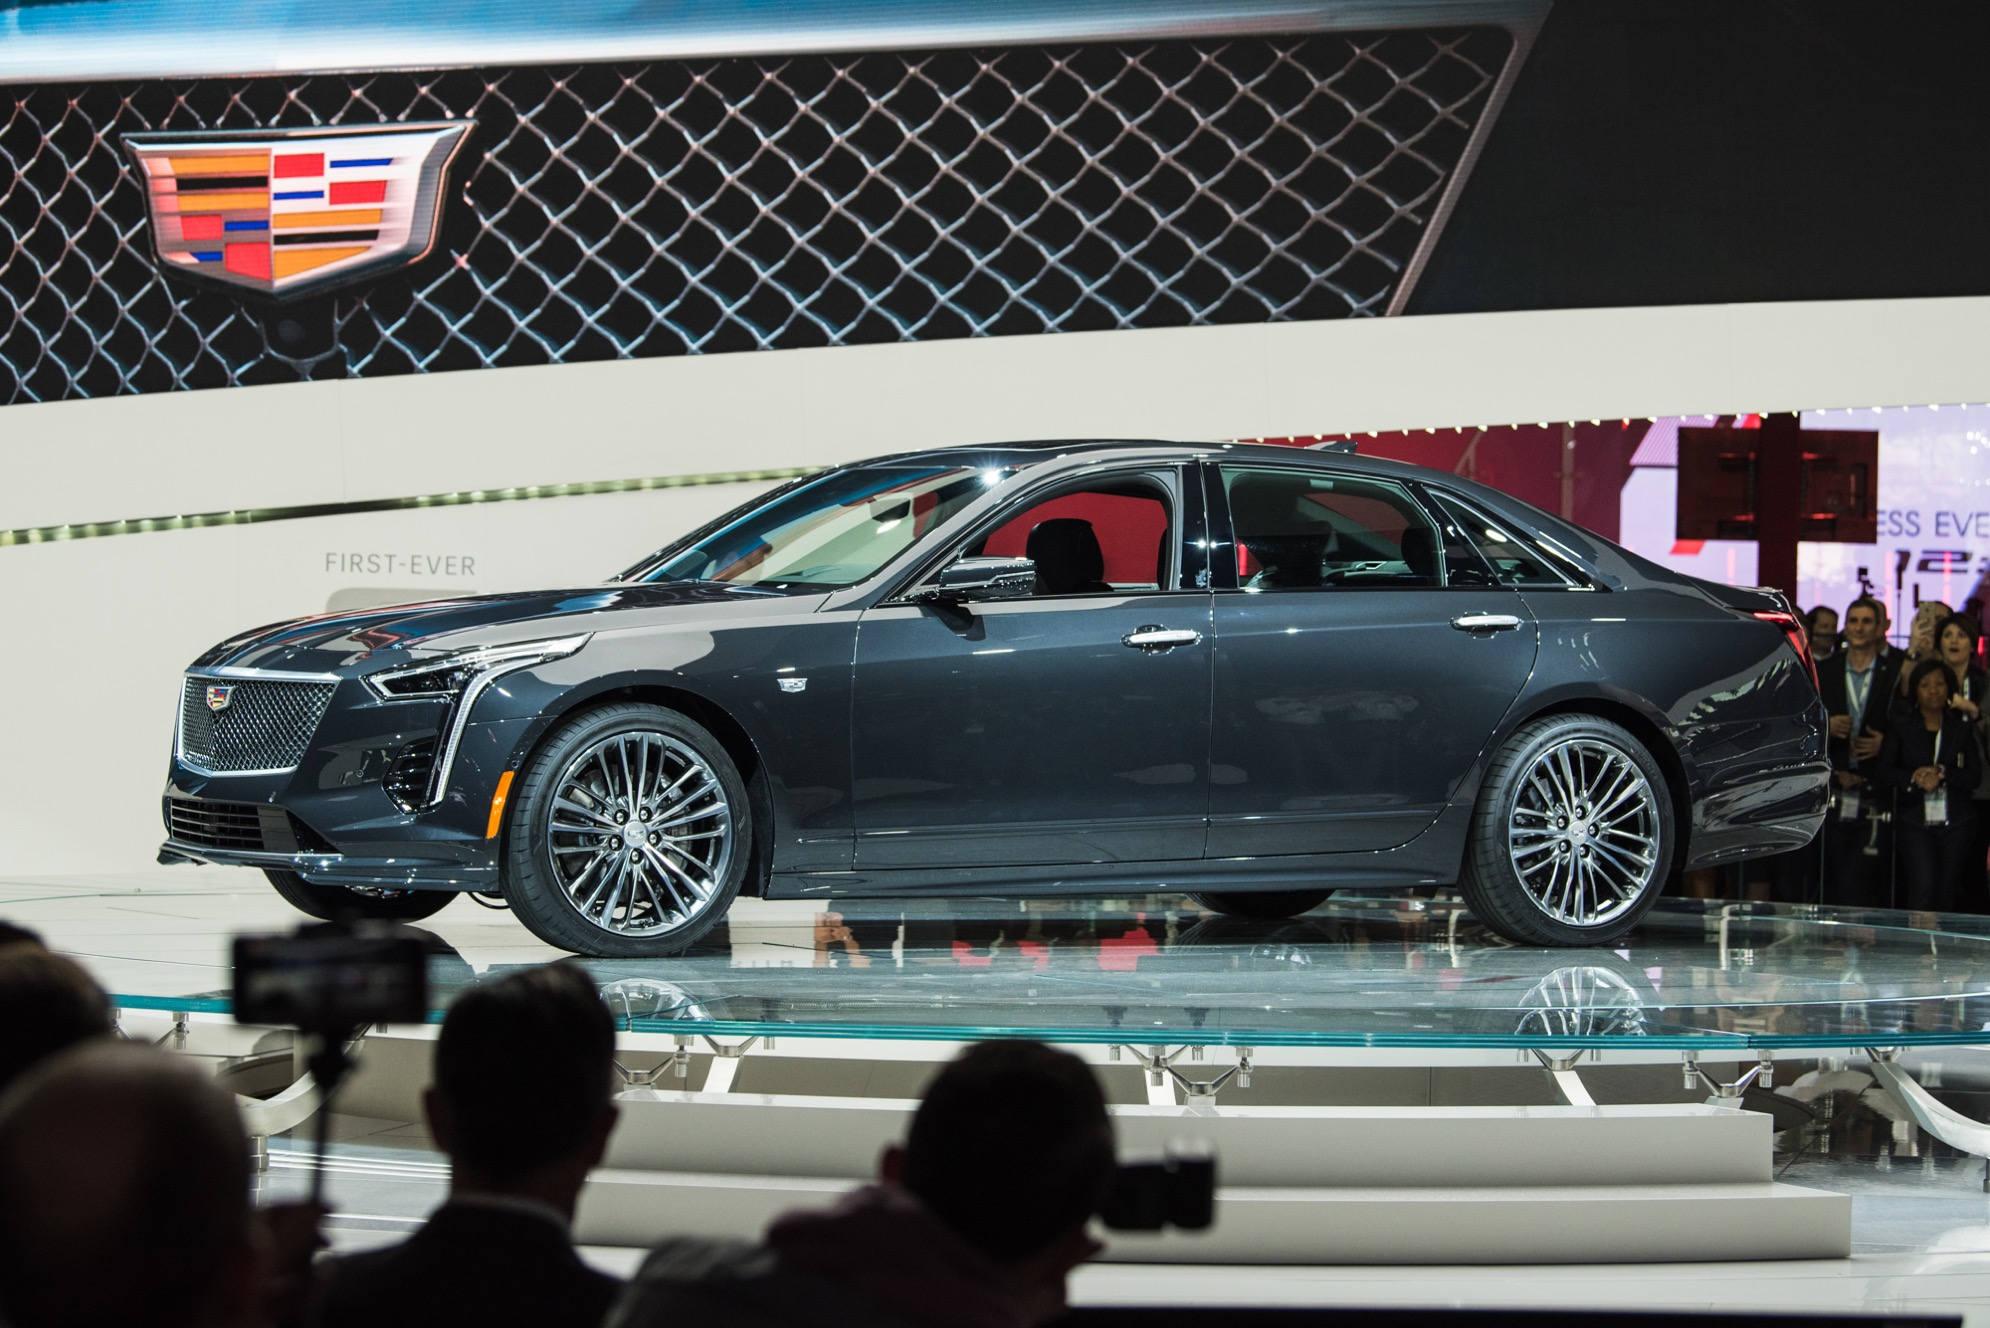 2019 Cadillac Ct6 V Preorders Sell Out Within Minutes